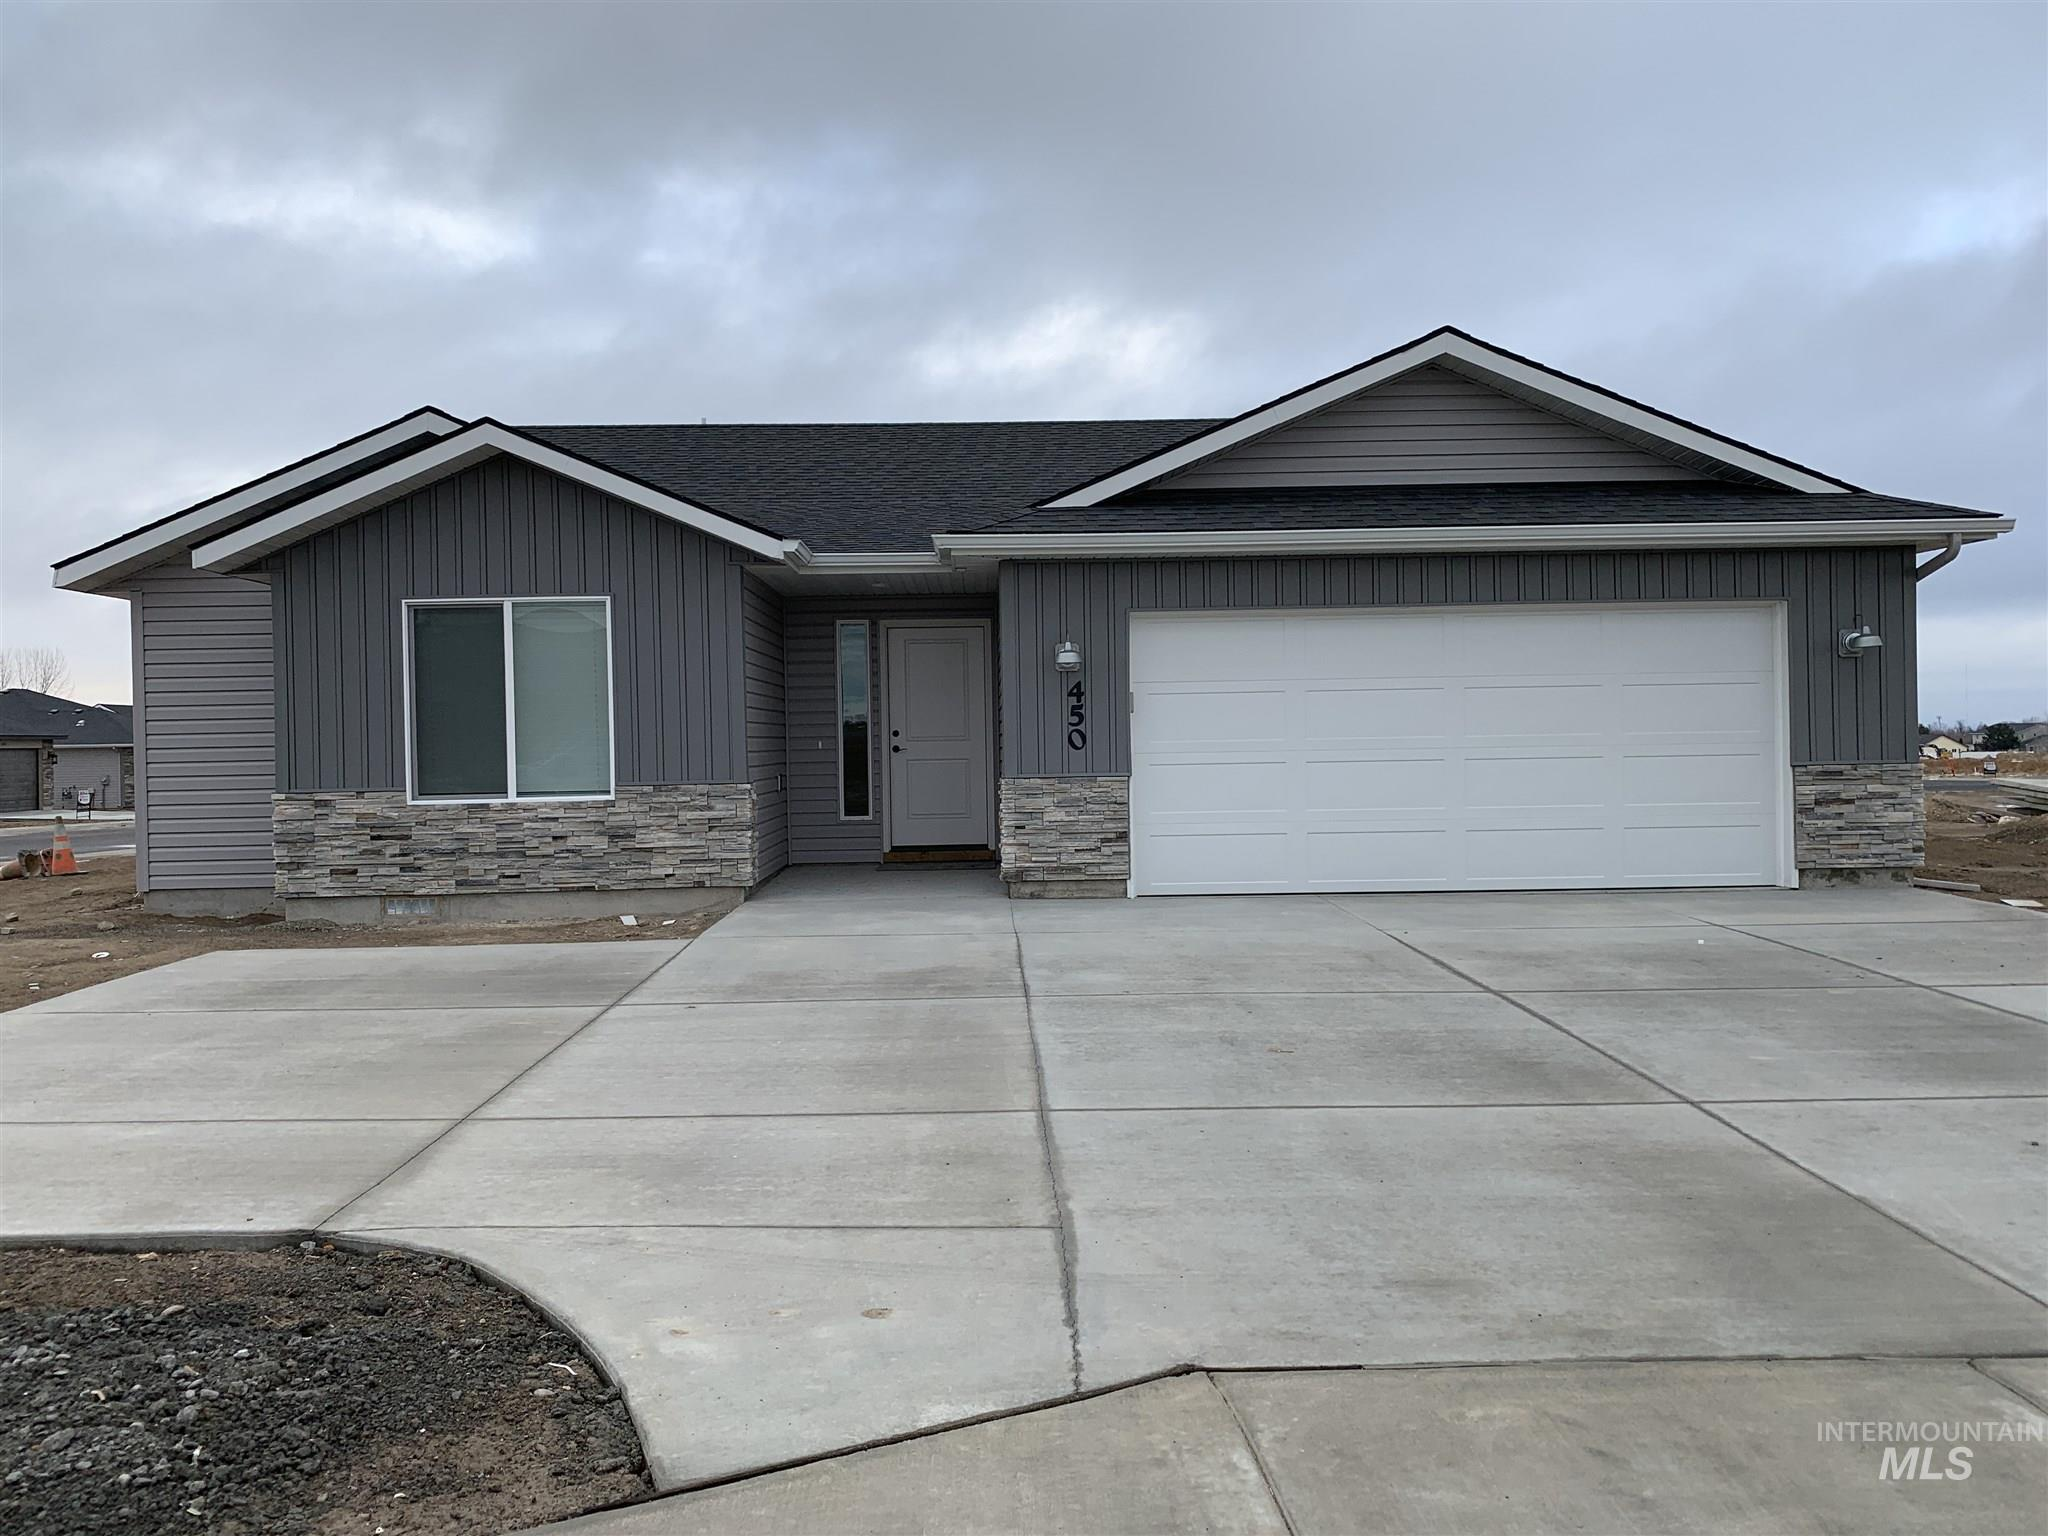 450 Southwood Ave W, Twin Falls, Idaho 83301, 3 Bedrooms, 2 Bathrooms, Rental For Rent, Price $1,900, 98791285